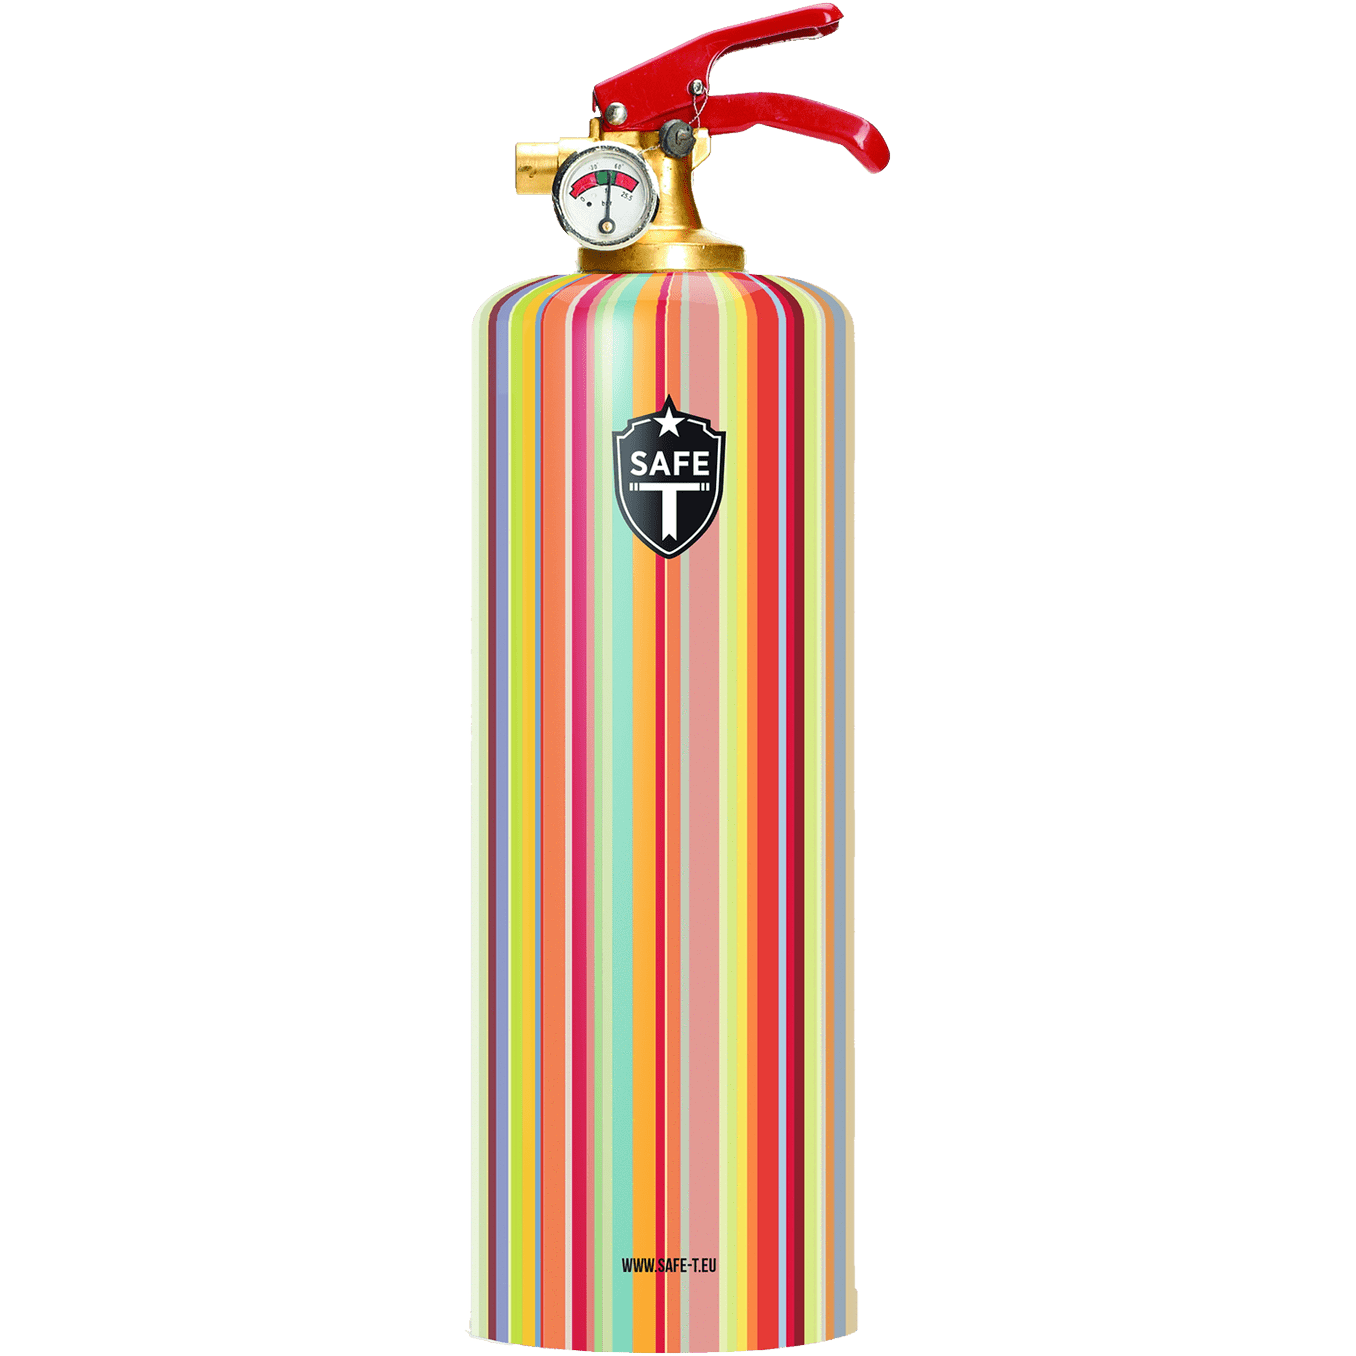 Safe-T Designer Fire Extinguisher fullcolors unique housewarming gift